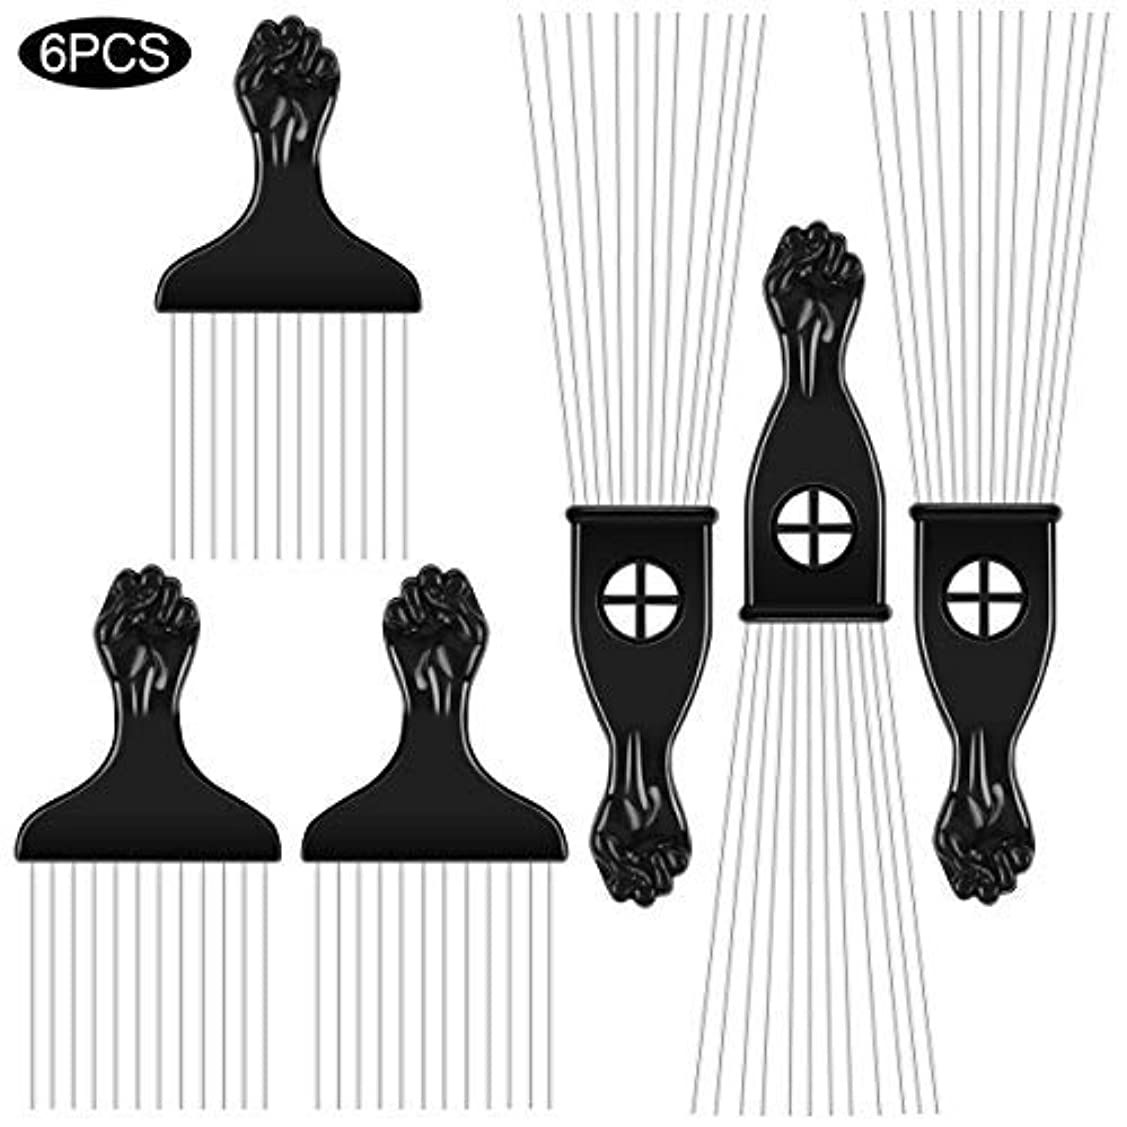 6PCS Afro Combs Metal African American black Fist Pick Comb Hairdressing Styling Tool [並行輸入品]